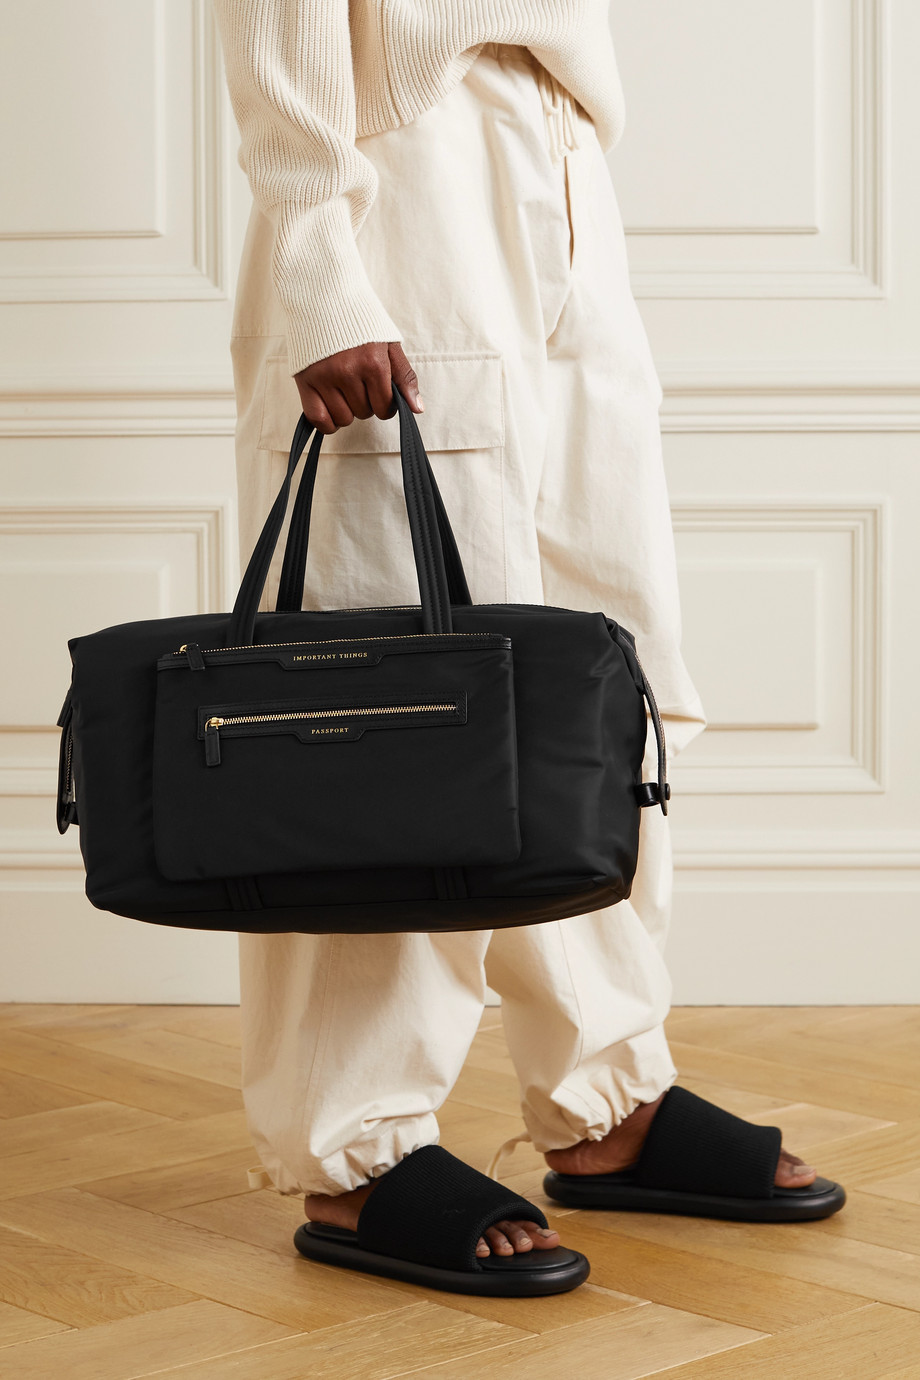 Anya Hindmarch Inflight leather-trimmed recycled shell weekend bag